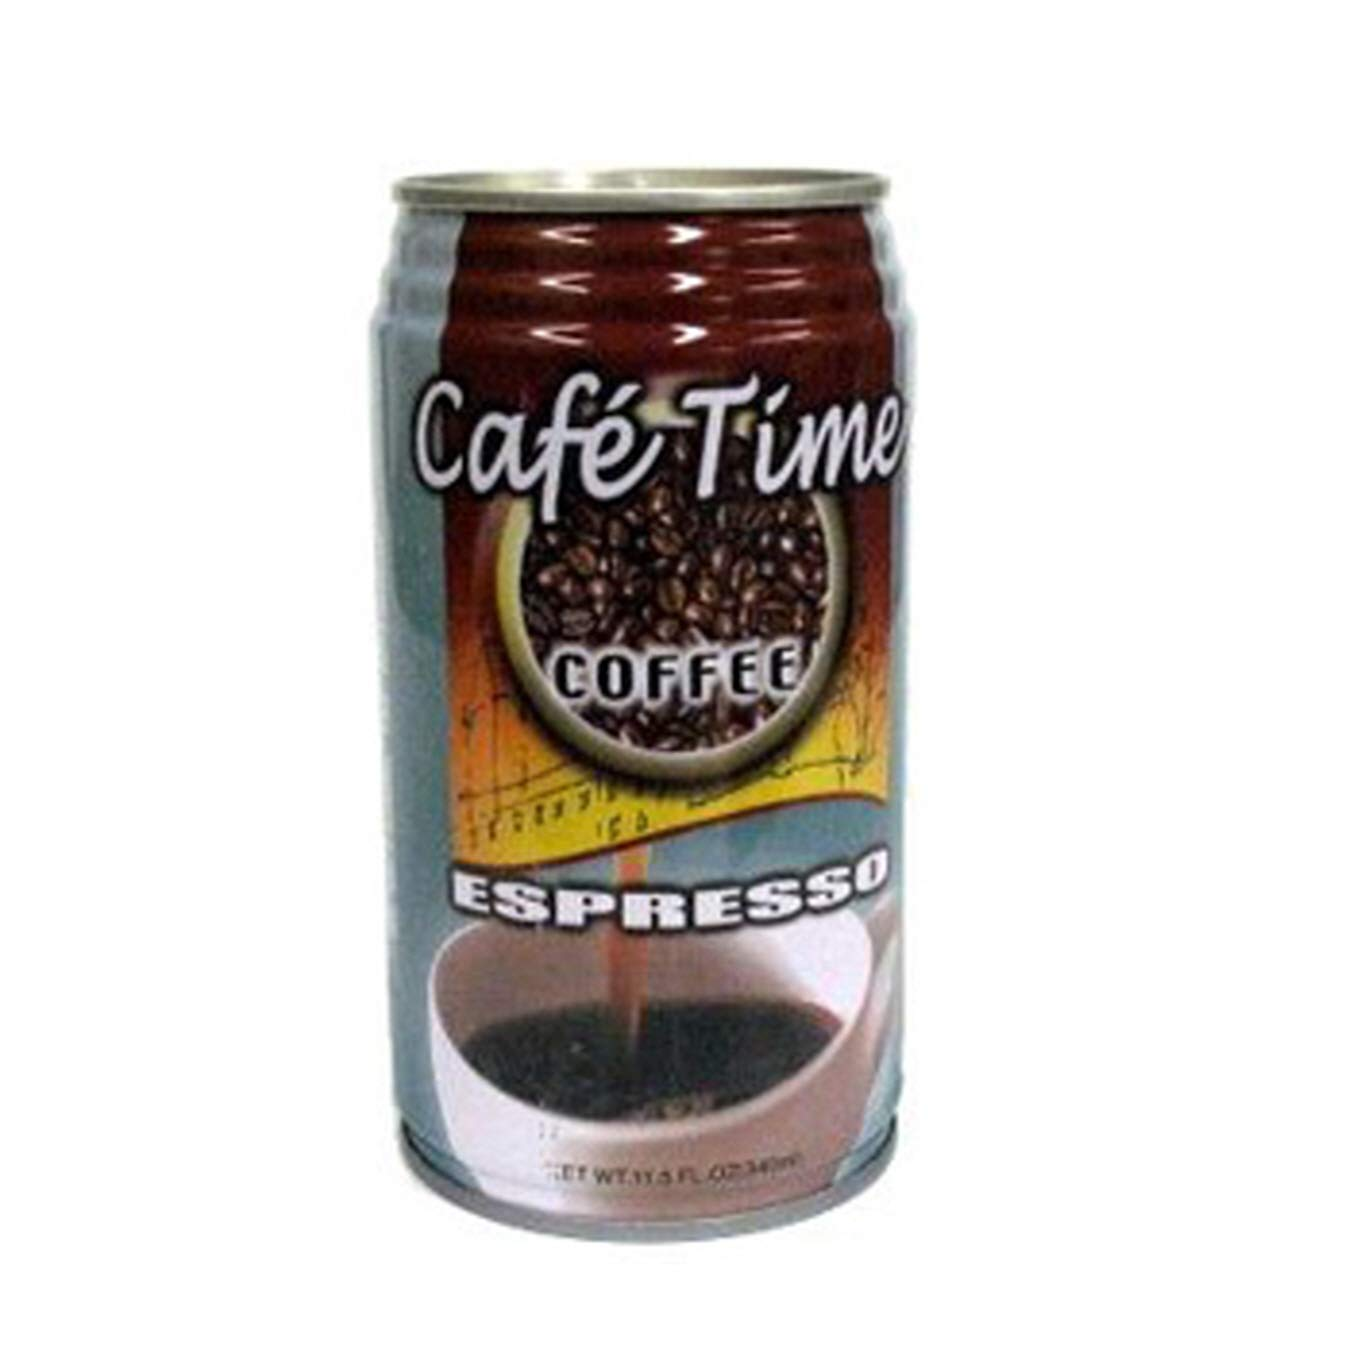 (Pack of 24) Café Time Coffee Drink Espresso, 11.5oz